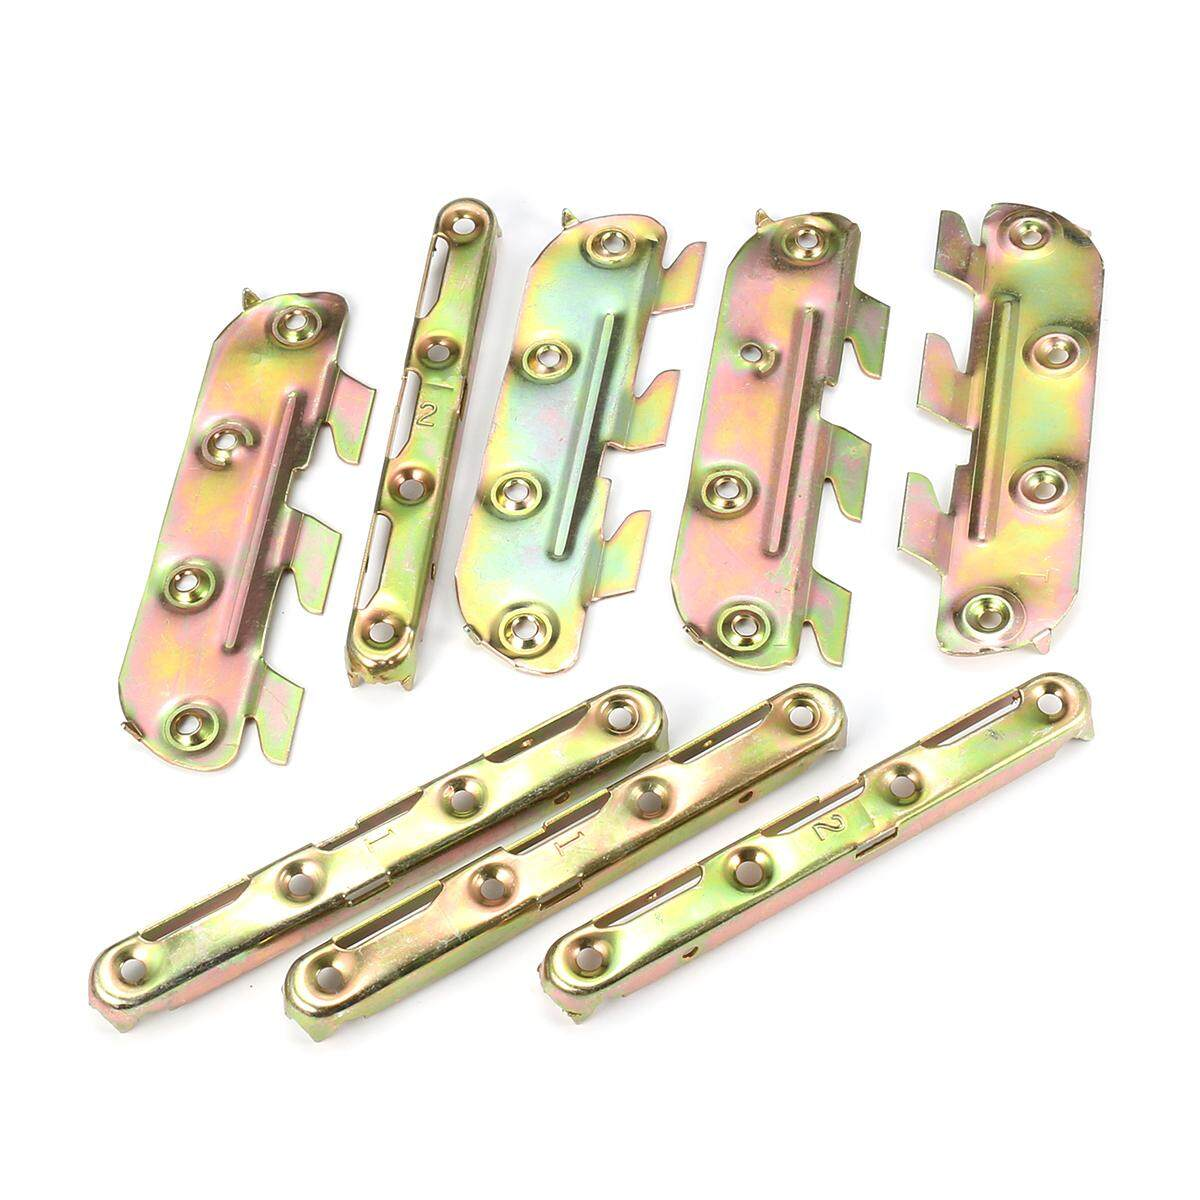 8 Pcs/set 127mm Iron Bed Fittings Connectors Bracket Joiners Replacement Hook By Glimmer.